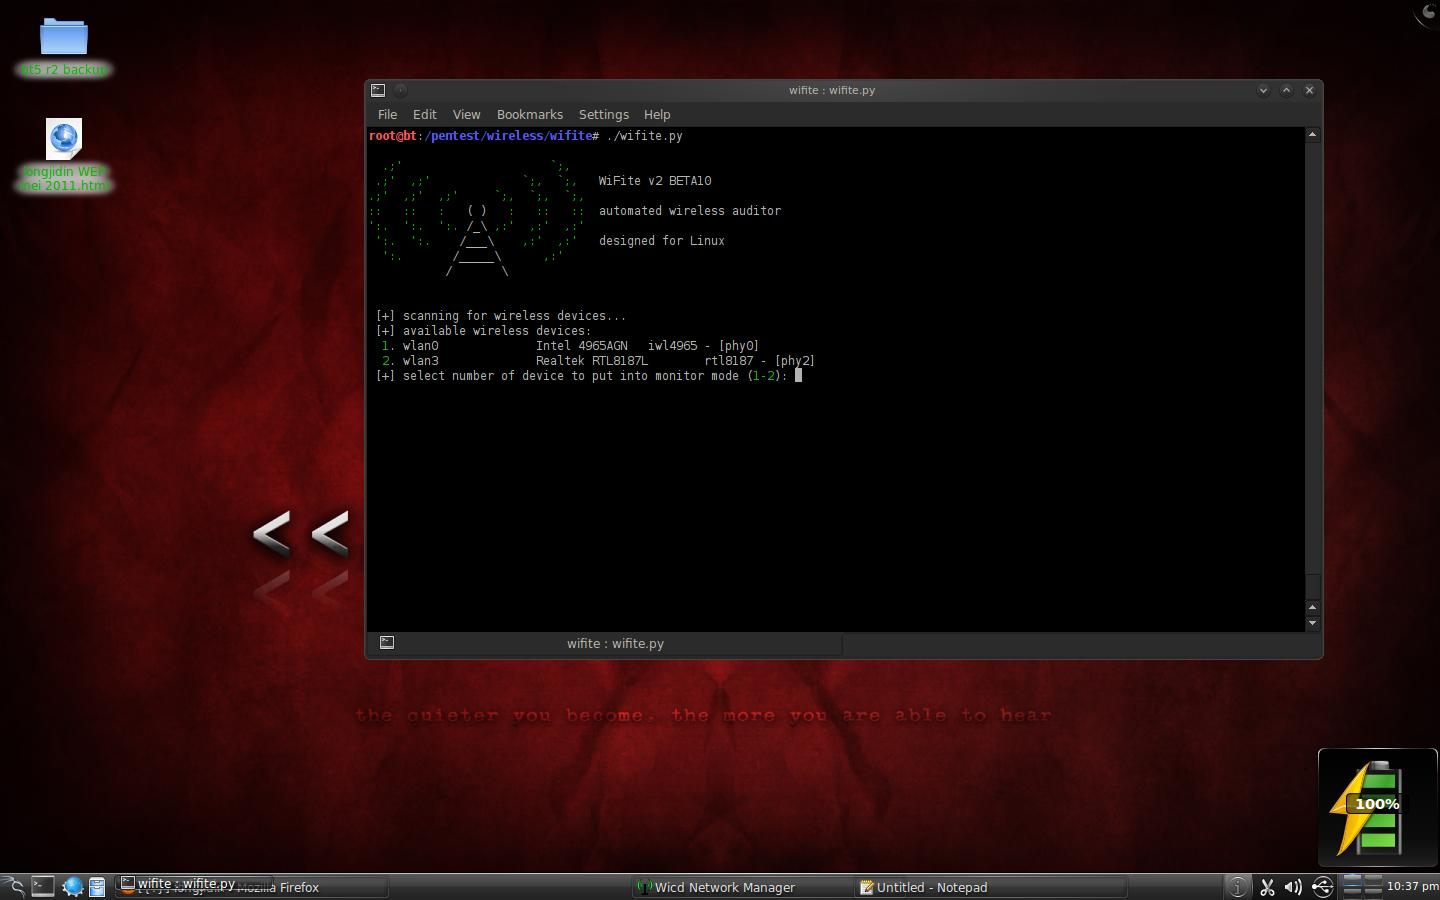 longjidin: Wifite + Reaver WPA/WPA2 crack in BackTrack 5 R2